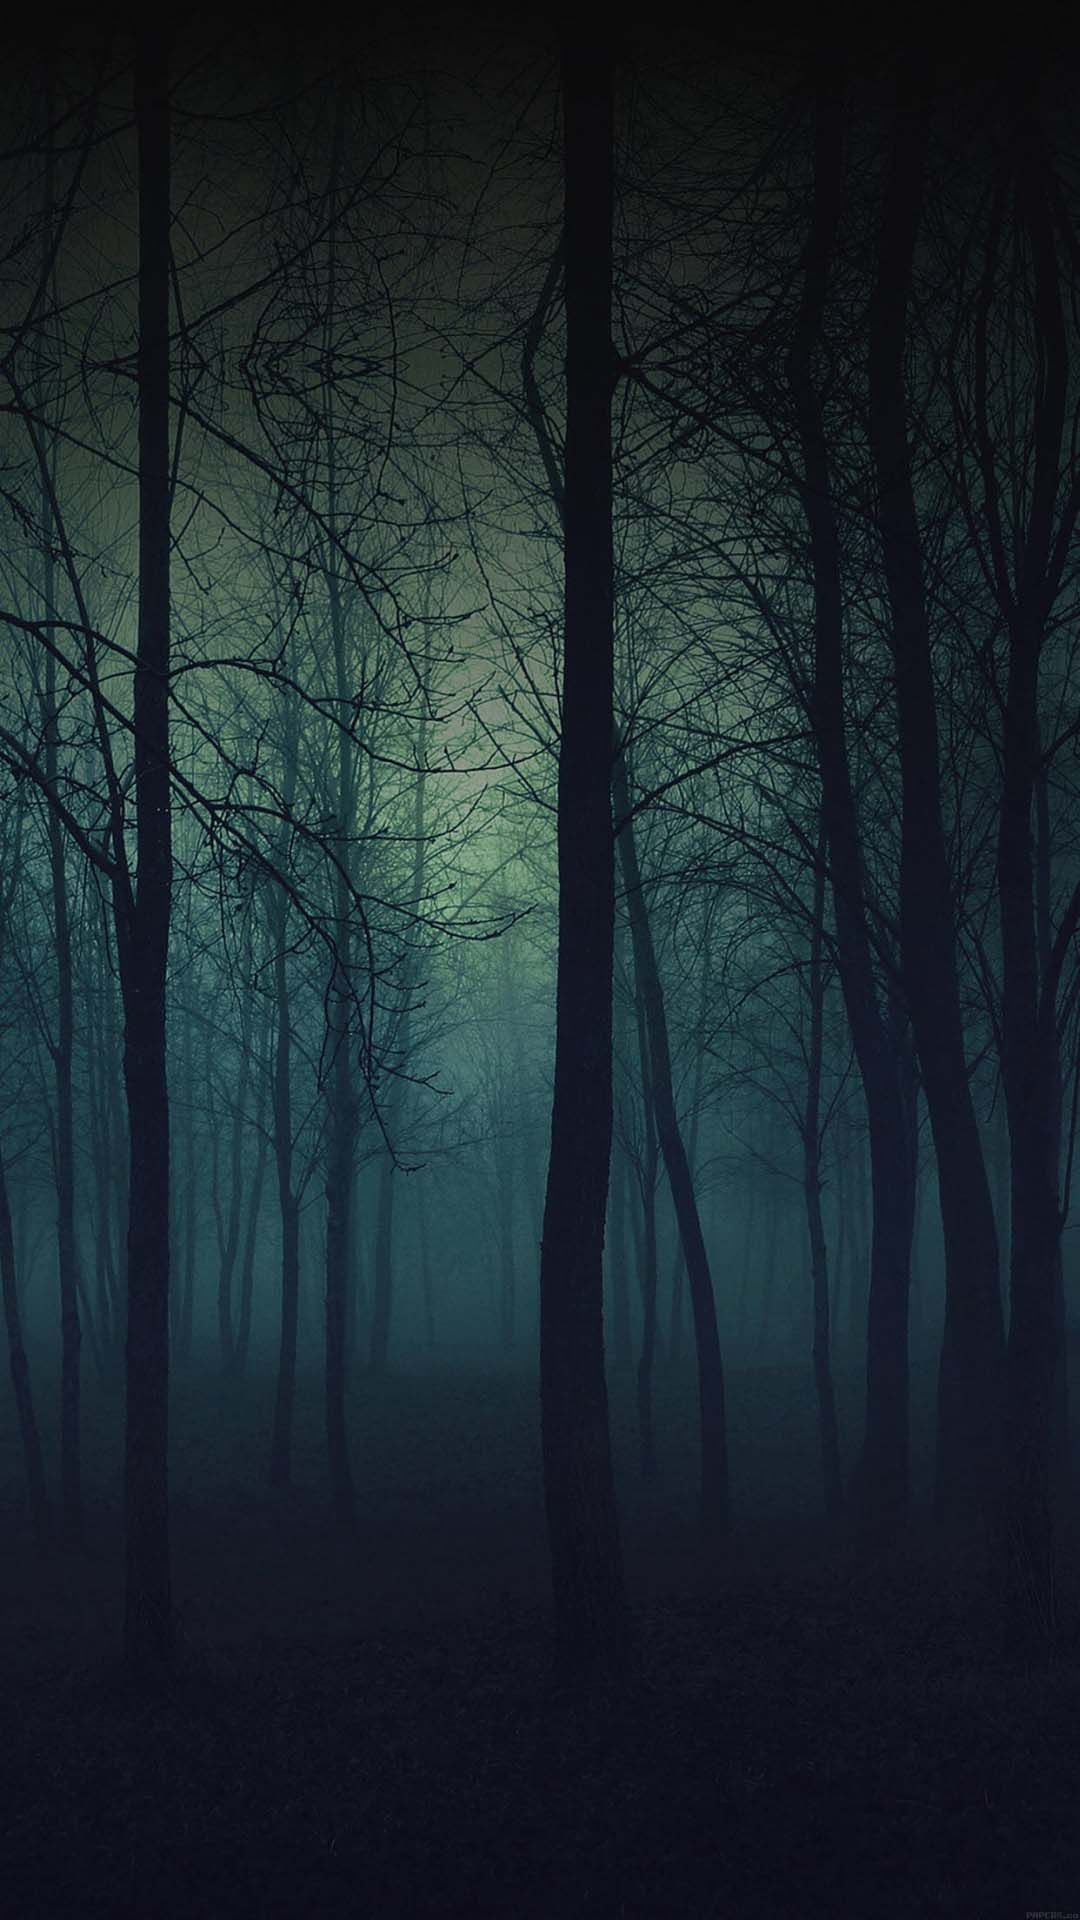 Dark forrest wallpaper mobile phone